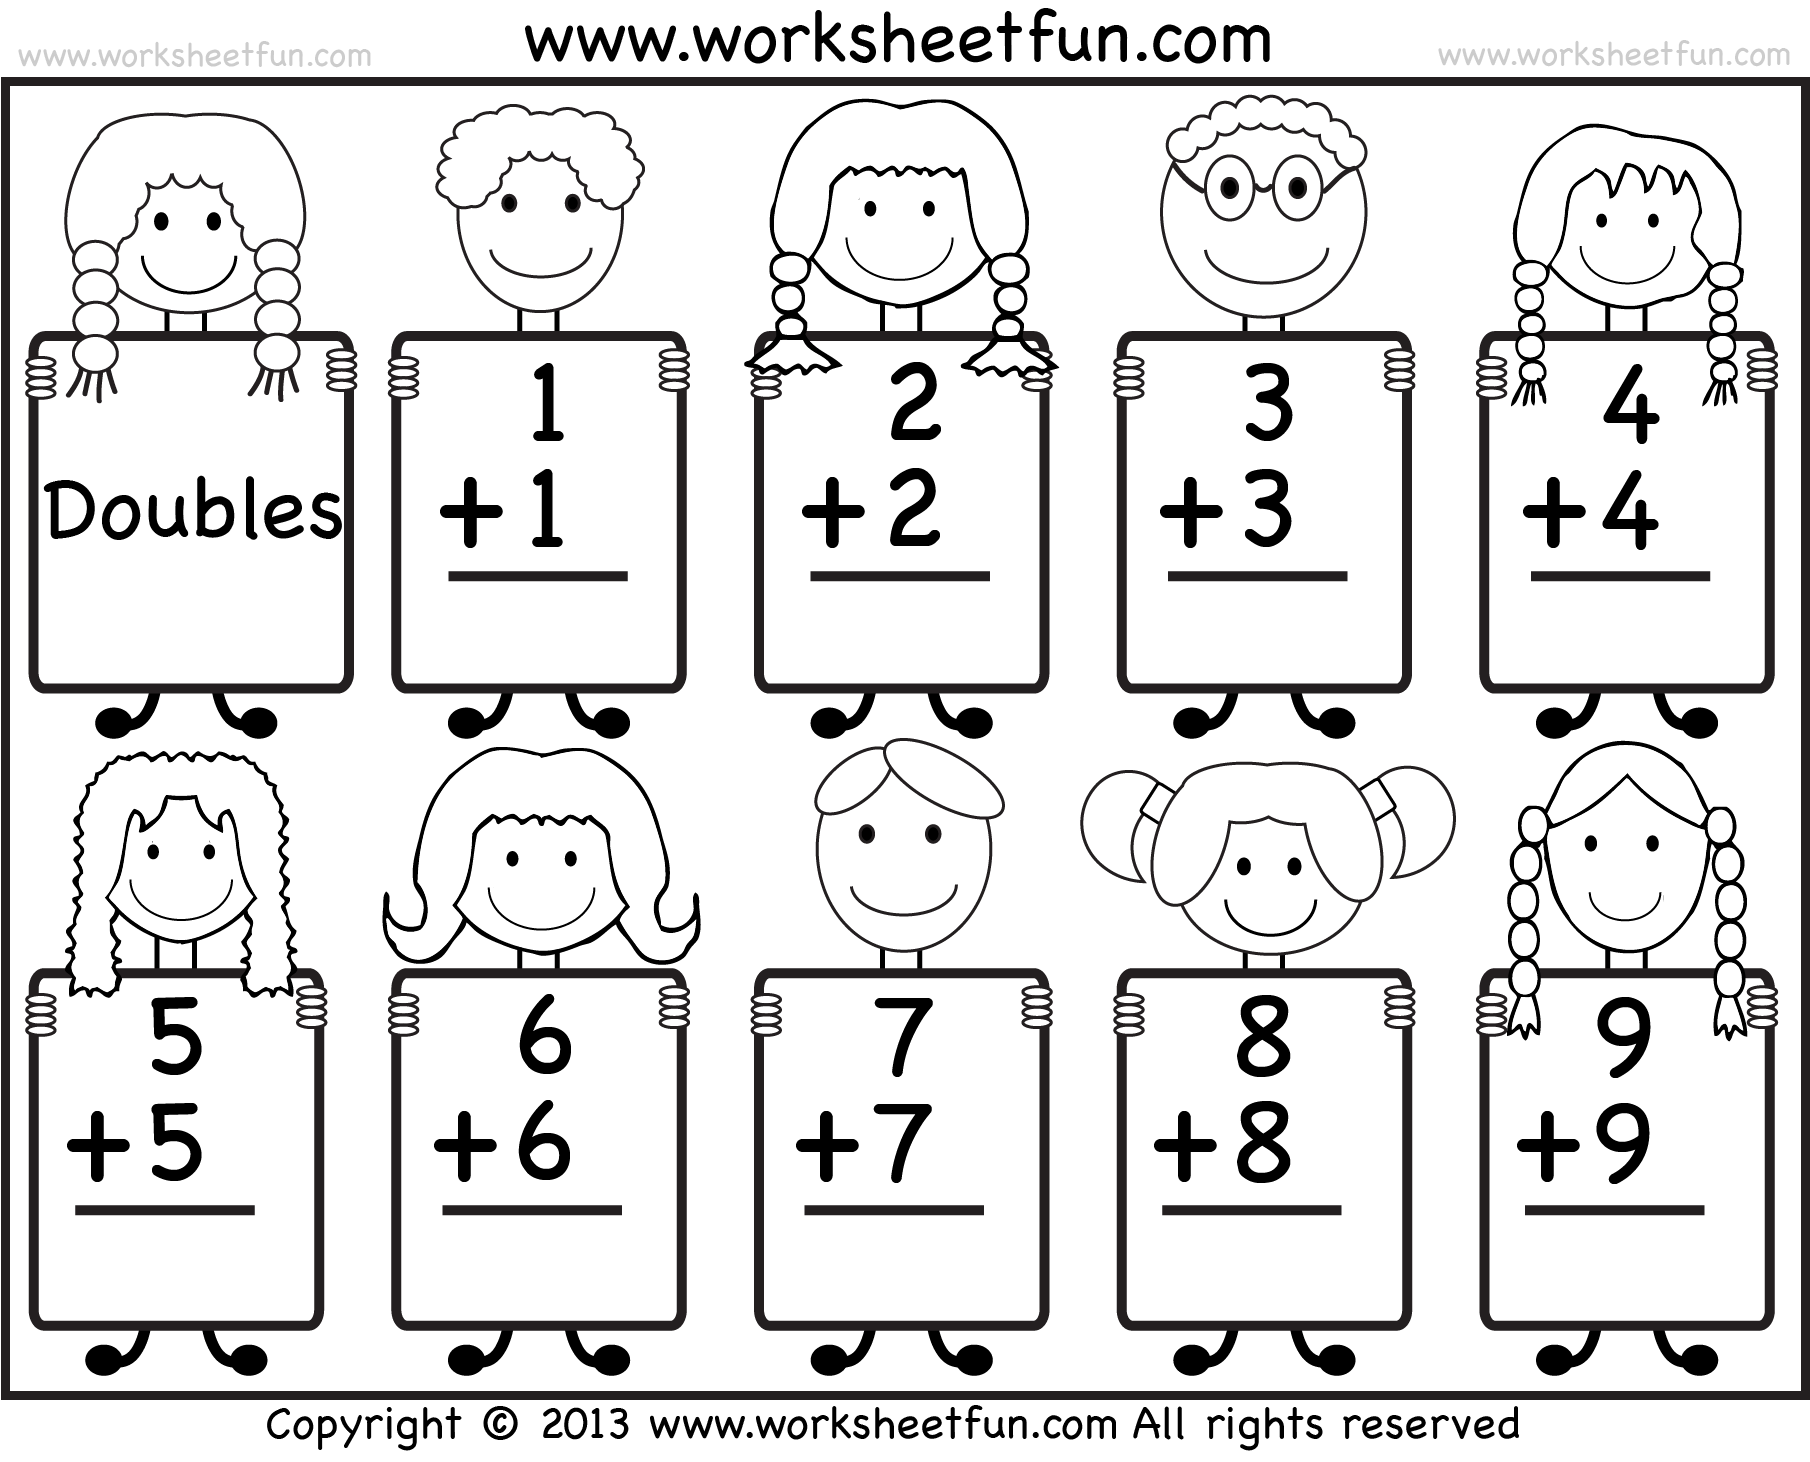 Worksheets Adding Doubles Worksheet addition doubles facts beginner worksheet free download